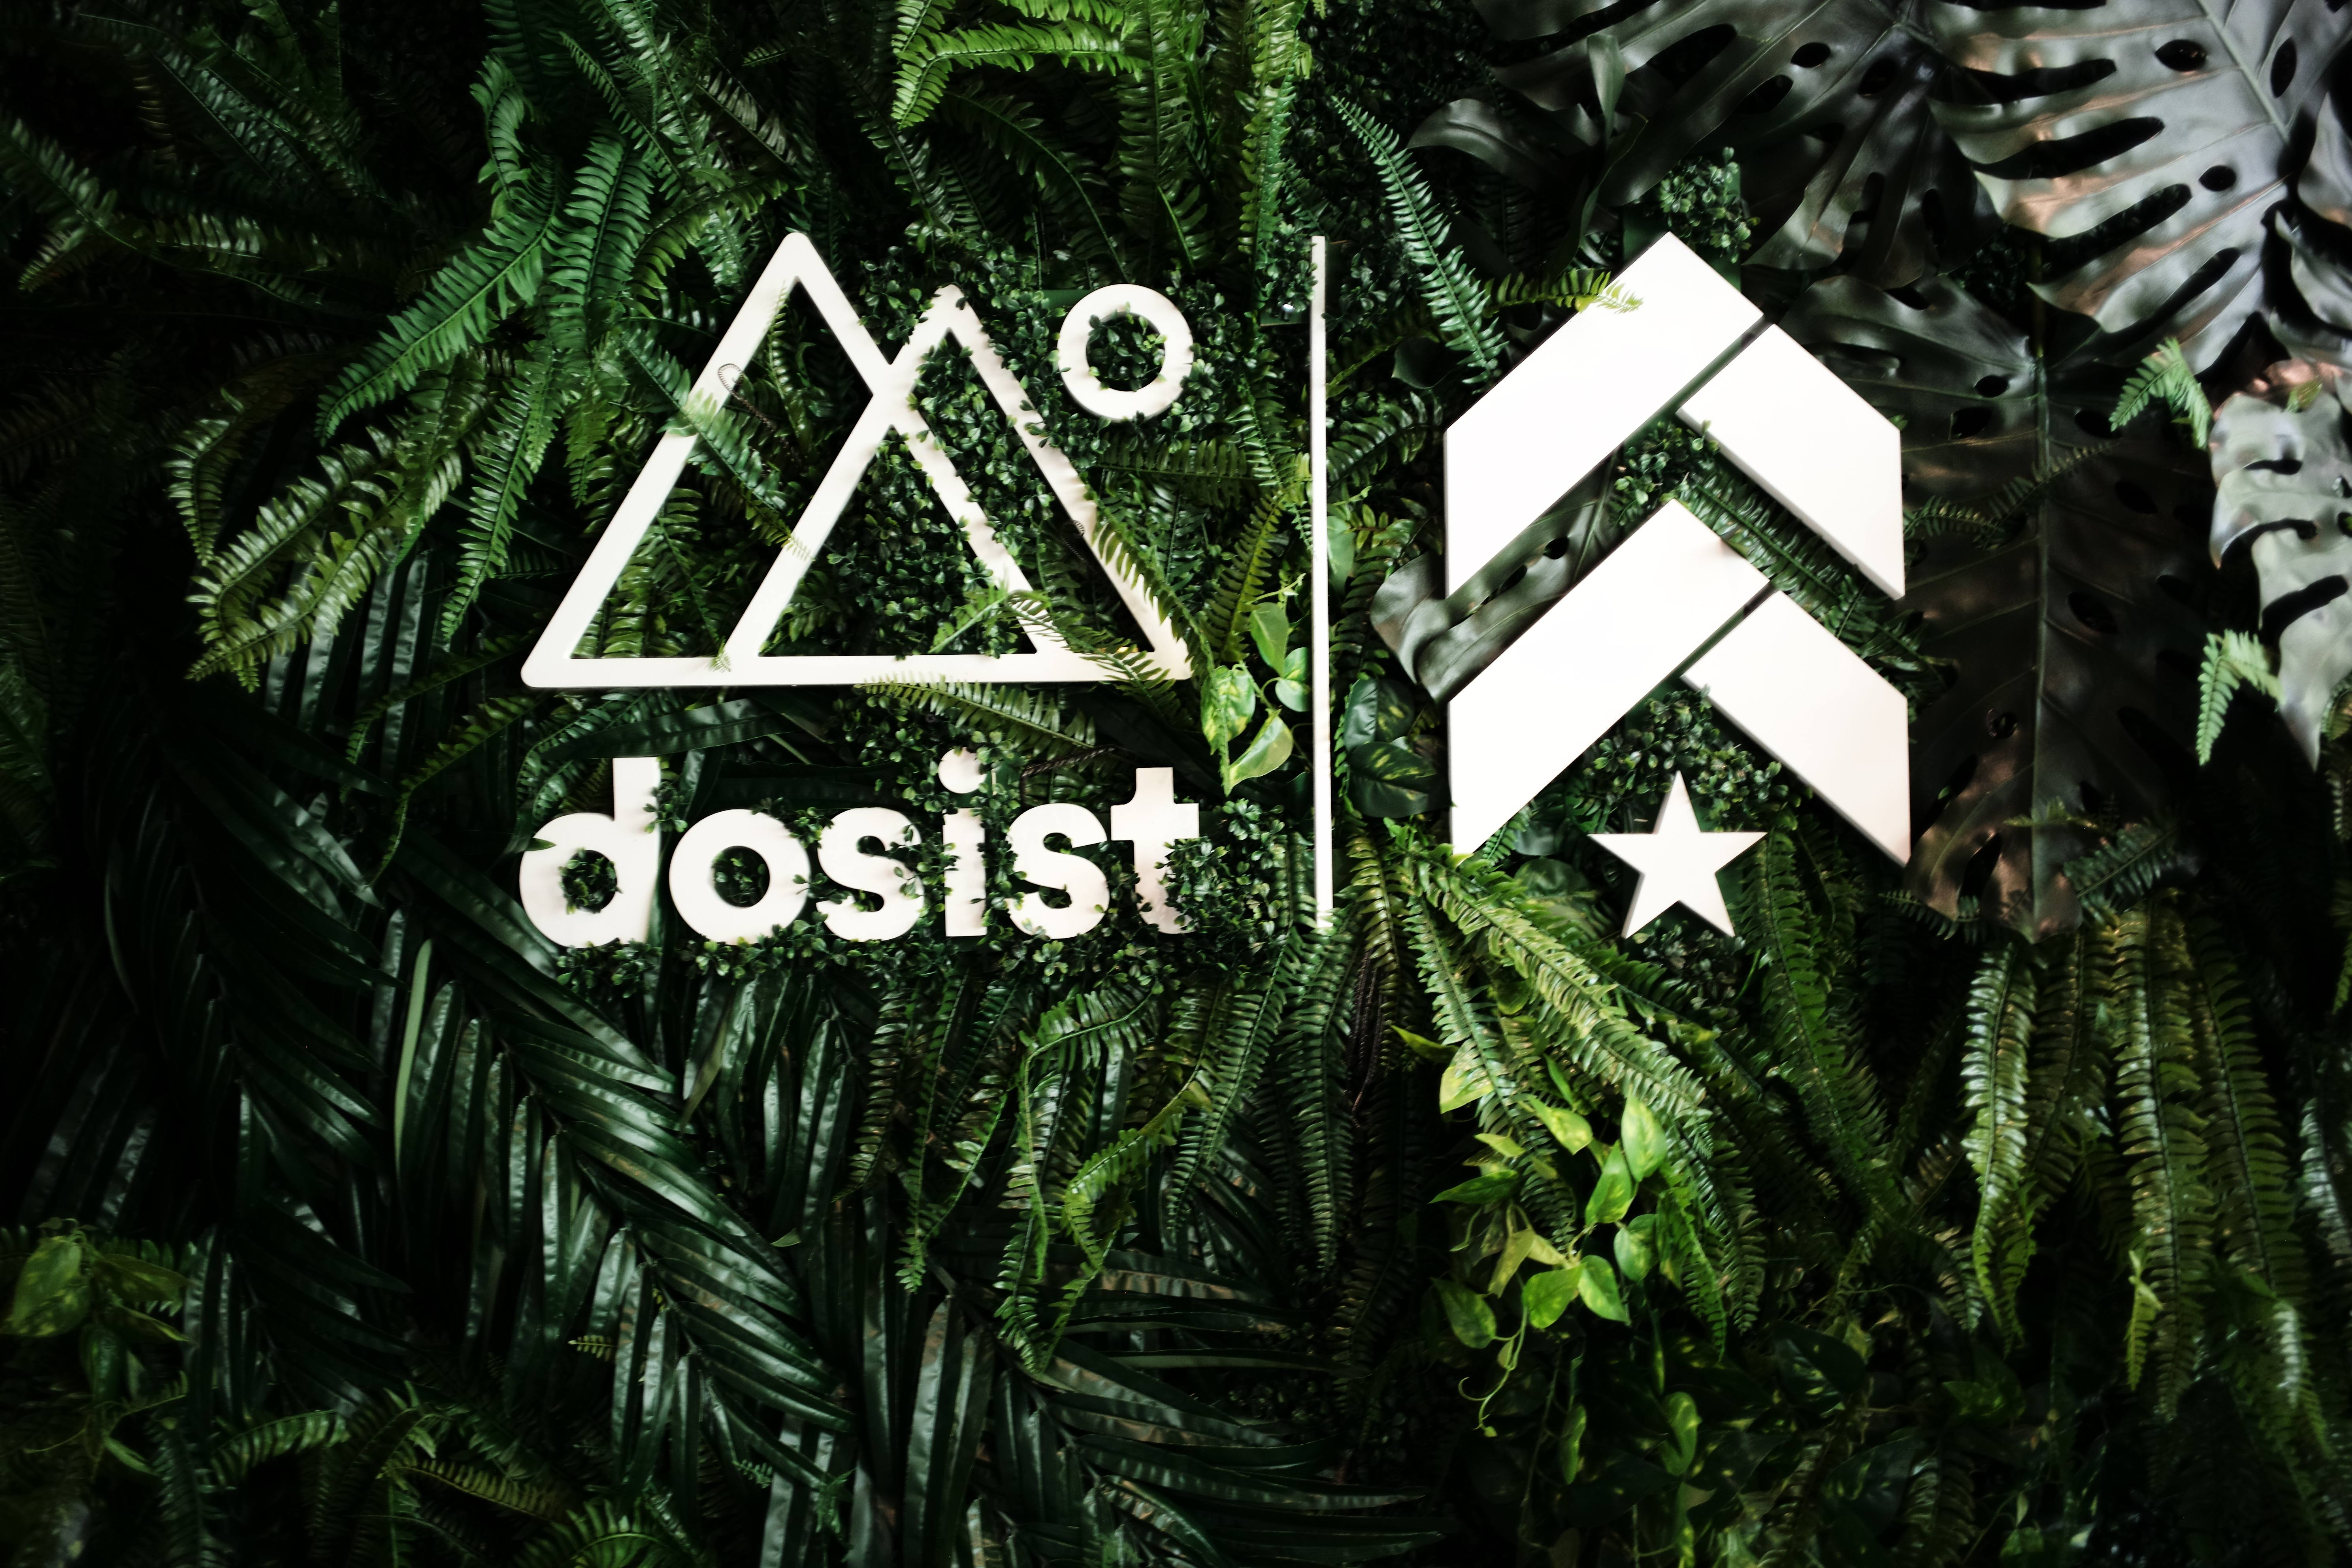 Dosist double triangle and Barry's Bootcamp upward arrows and star logos on wall of greenery